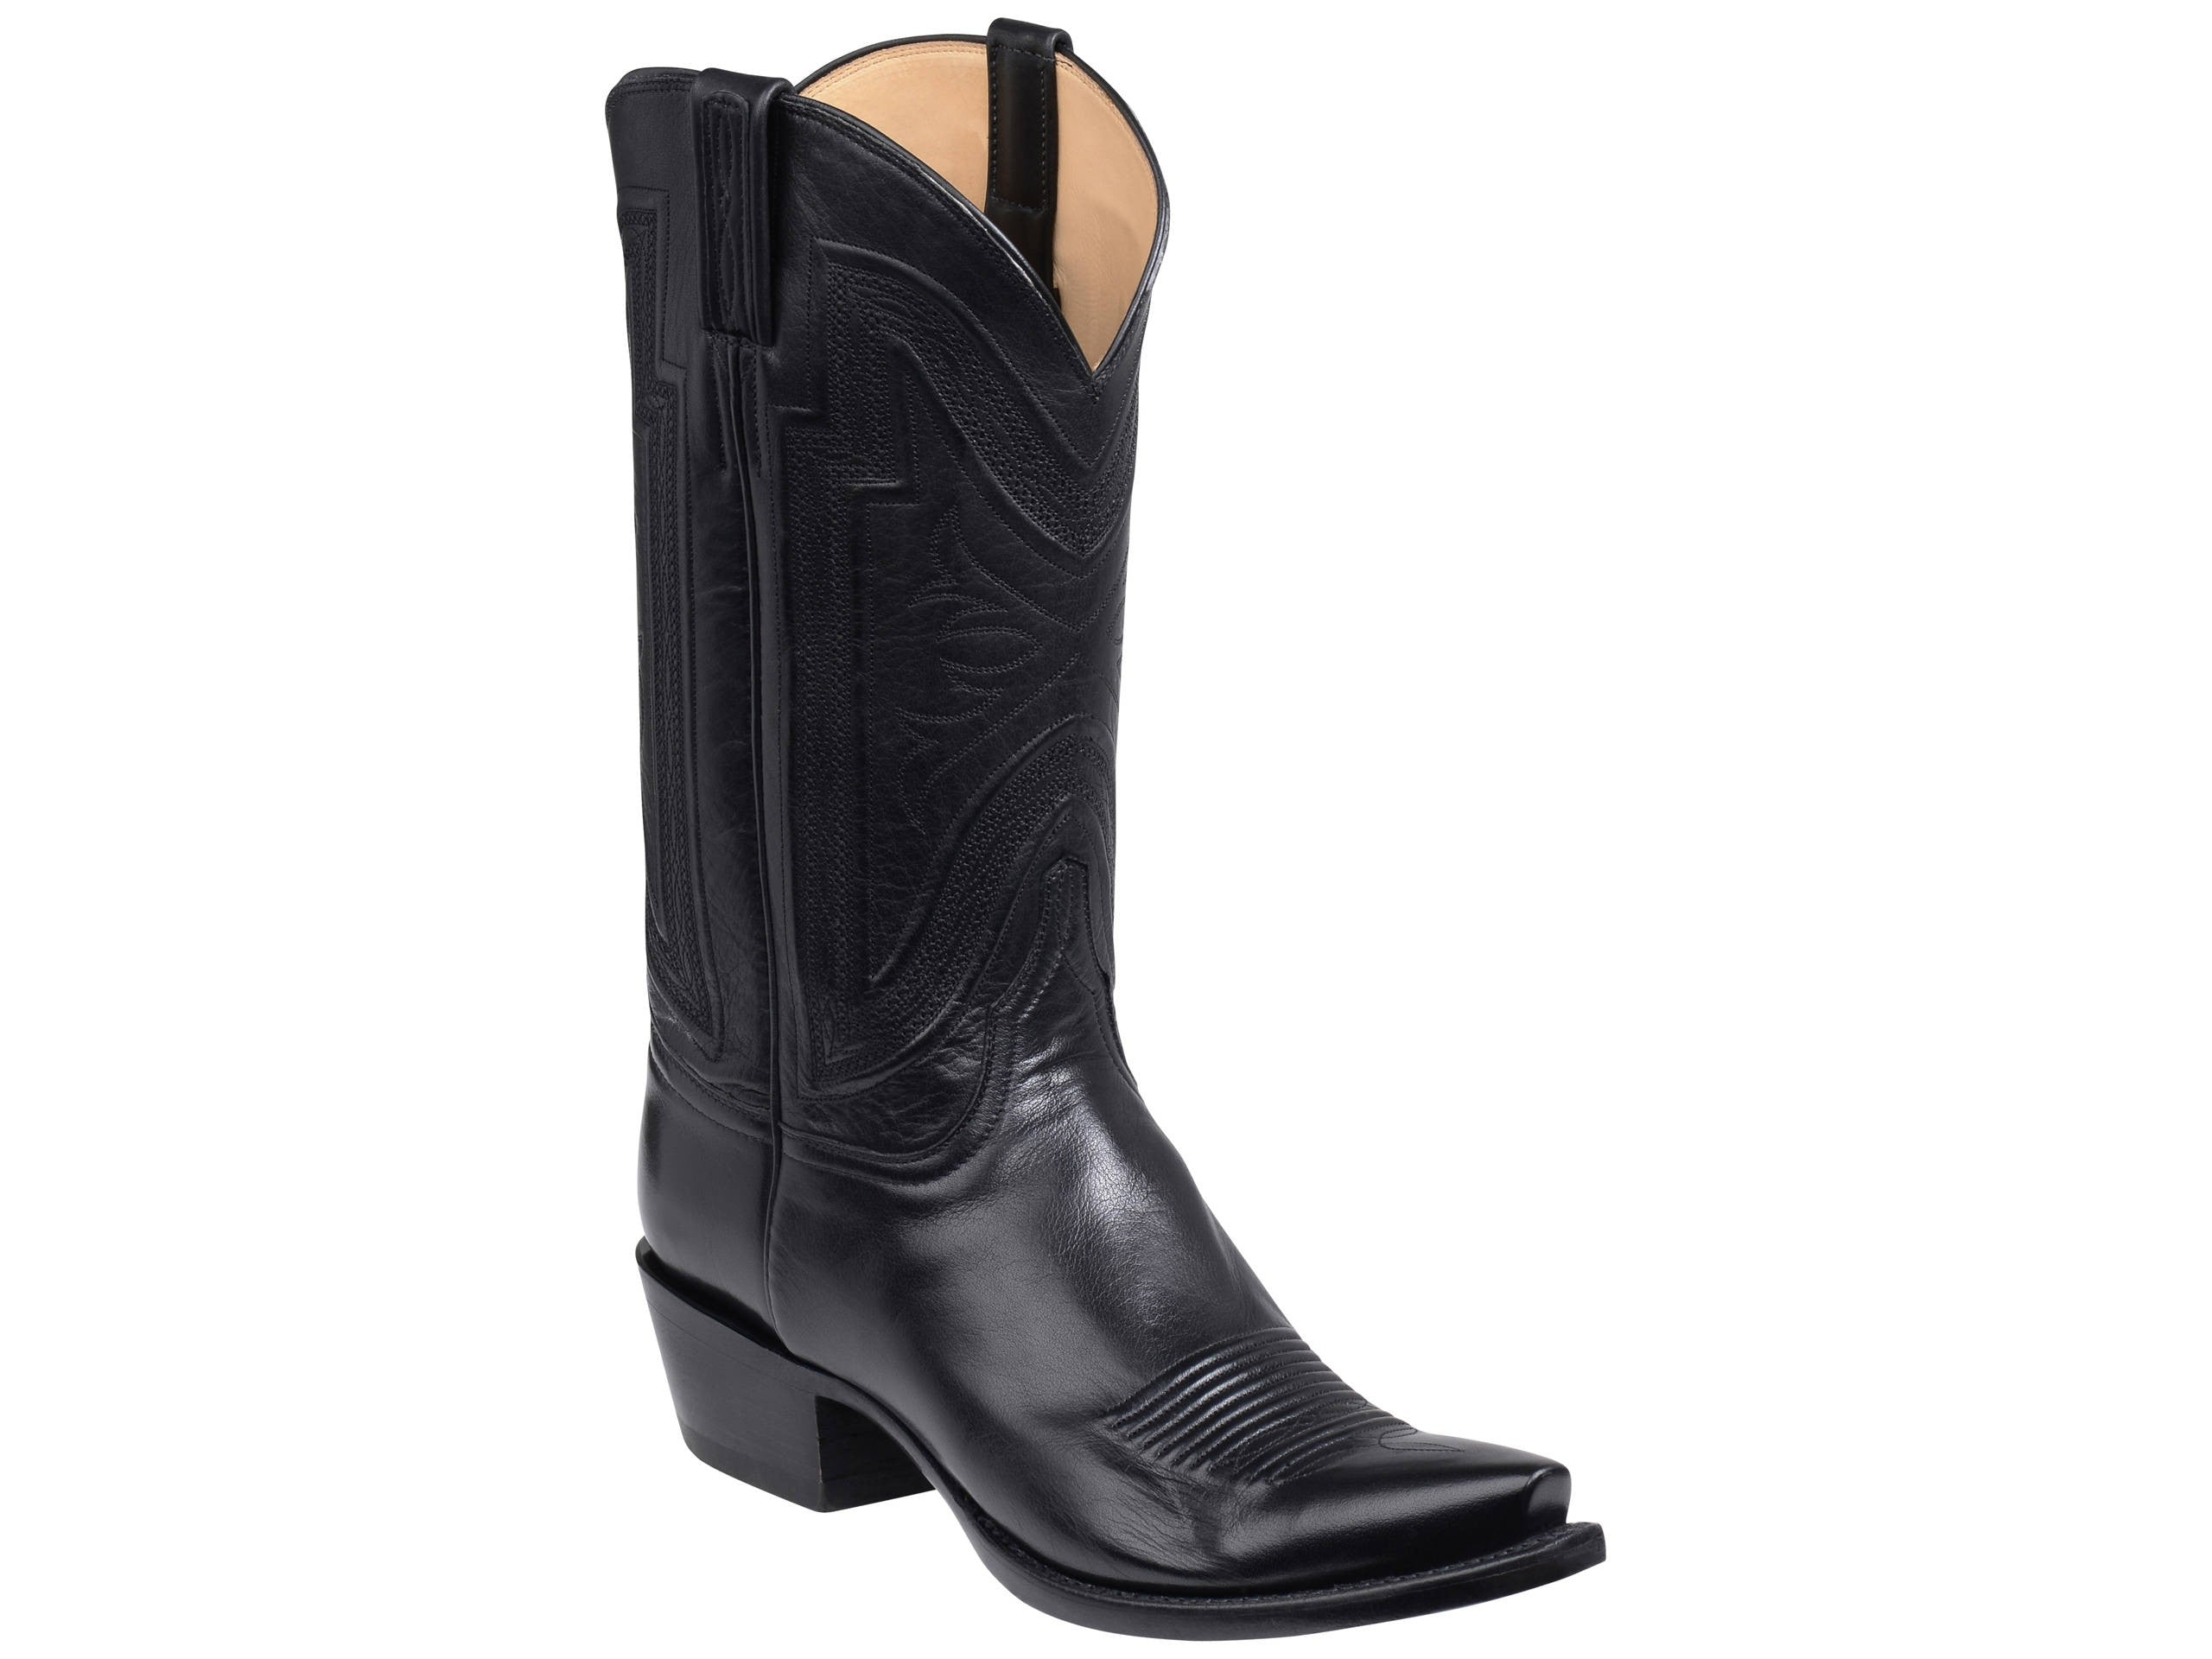 1284baeee06 Men s Lucchese Bootmaker Collins Boots Black  GY1503-5 3 – Allens Boots